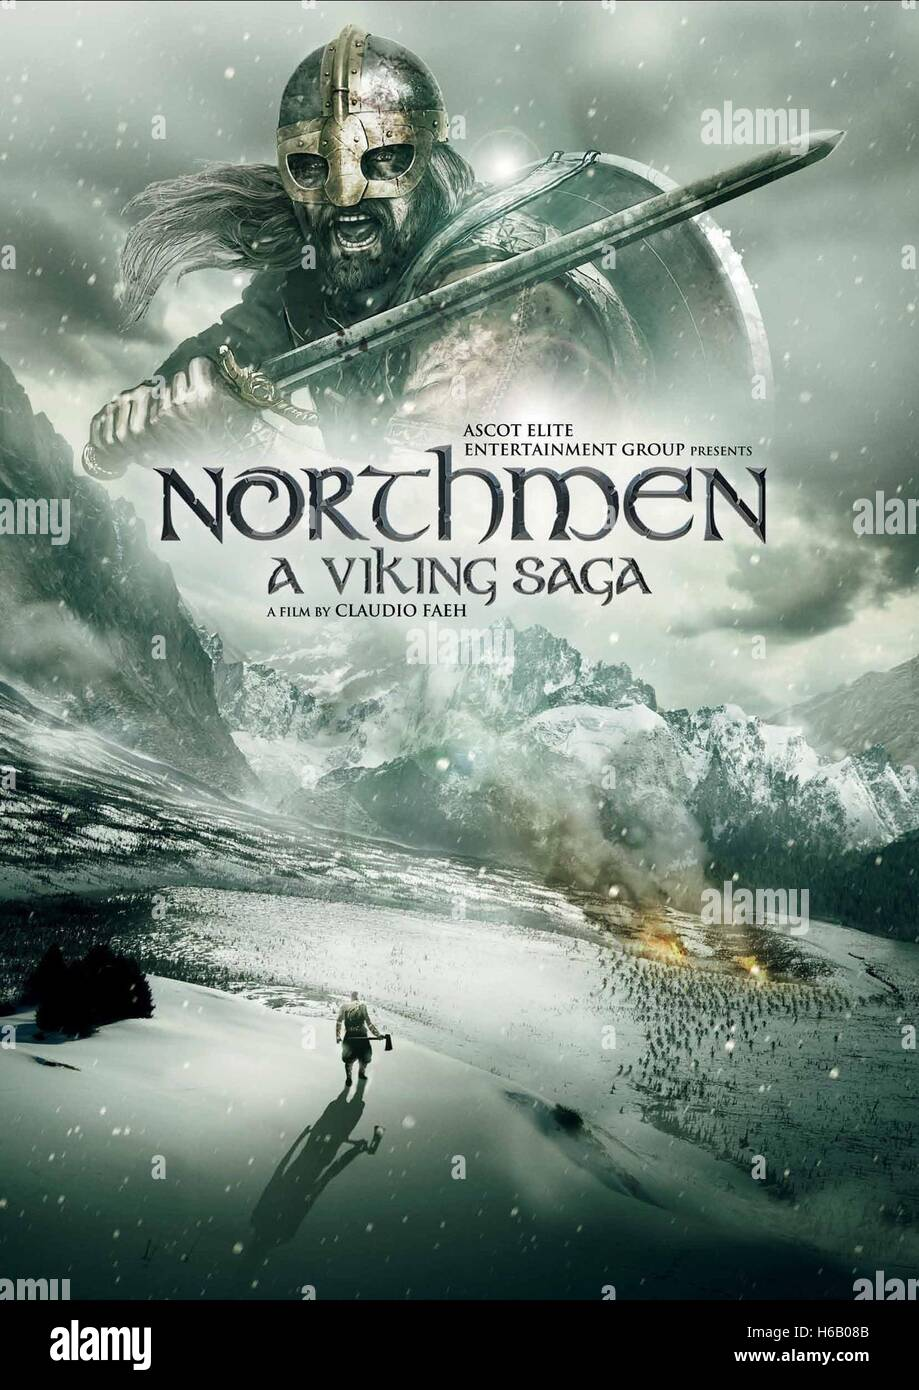 viking, member of the scandinavian seafaring warriors who raided and colonized wide areas of europe from the 9th to the 11th century. Movie Poster Northmen A Viking Saga 2014 Stock Photo Alamy